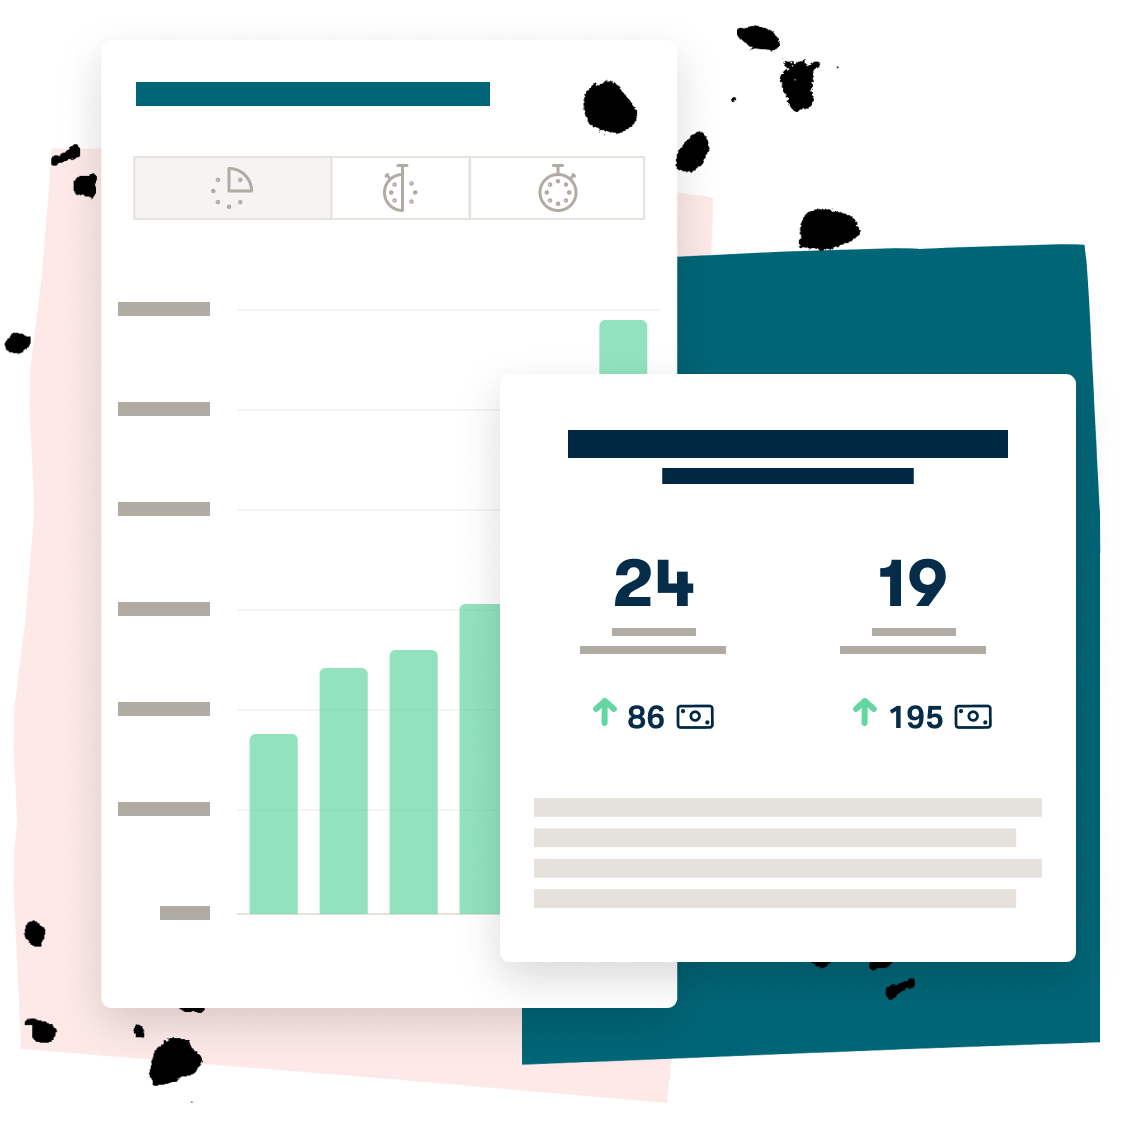 Charts and features illustrating business growth